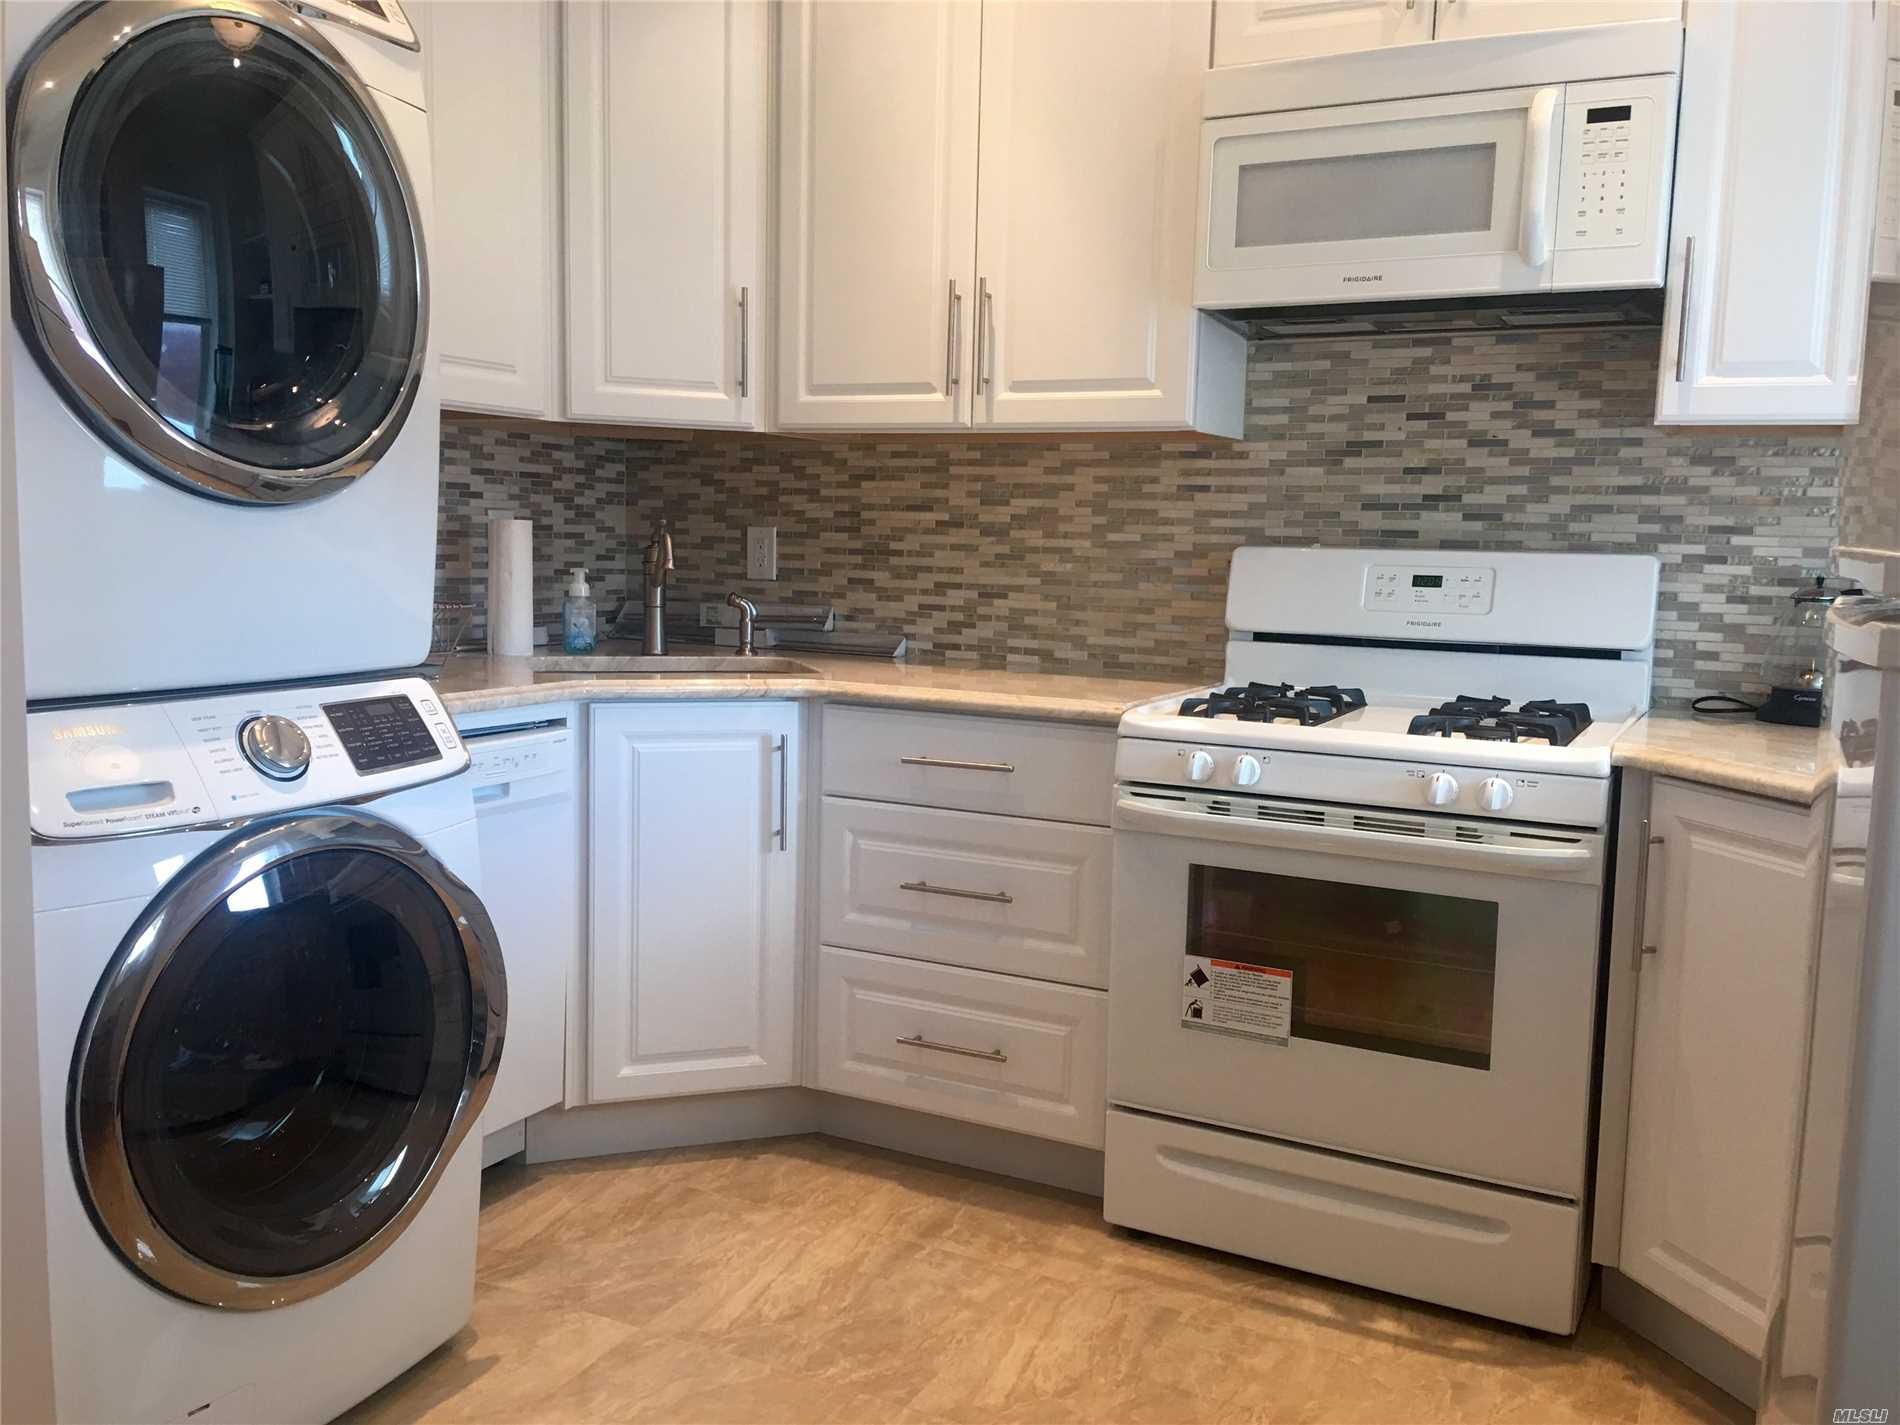 Two Bedroom Apartment With Washer And Dryer! 1 Large Bedroom, And 1 Office Space! Washer And Dryer, Hardwood Floors.